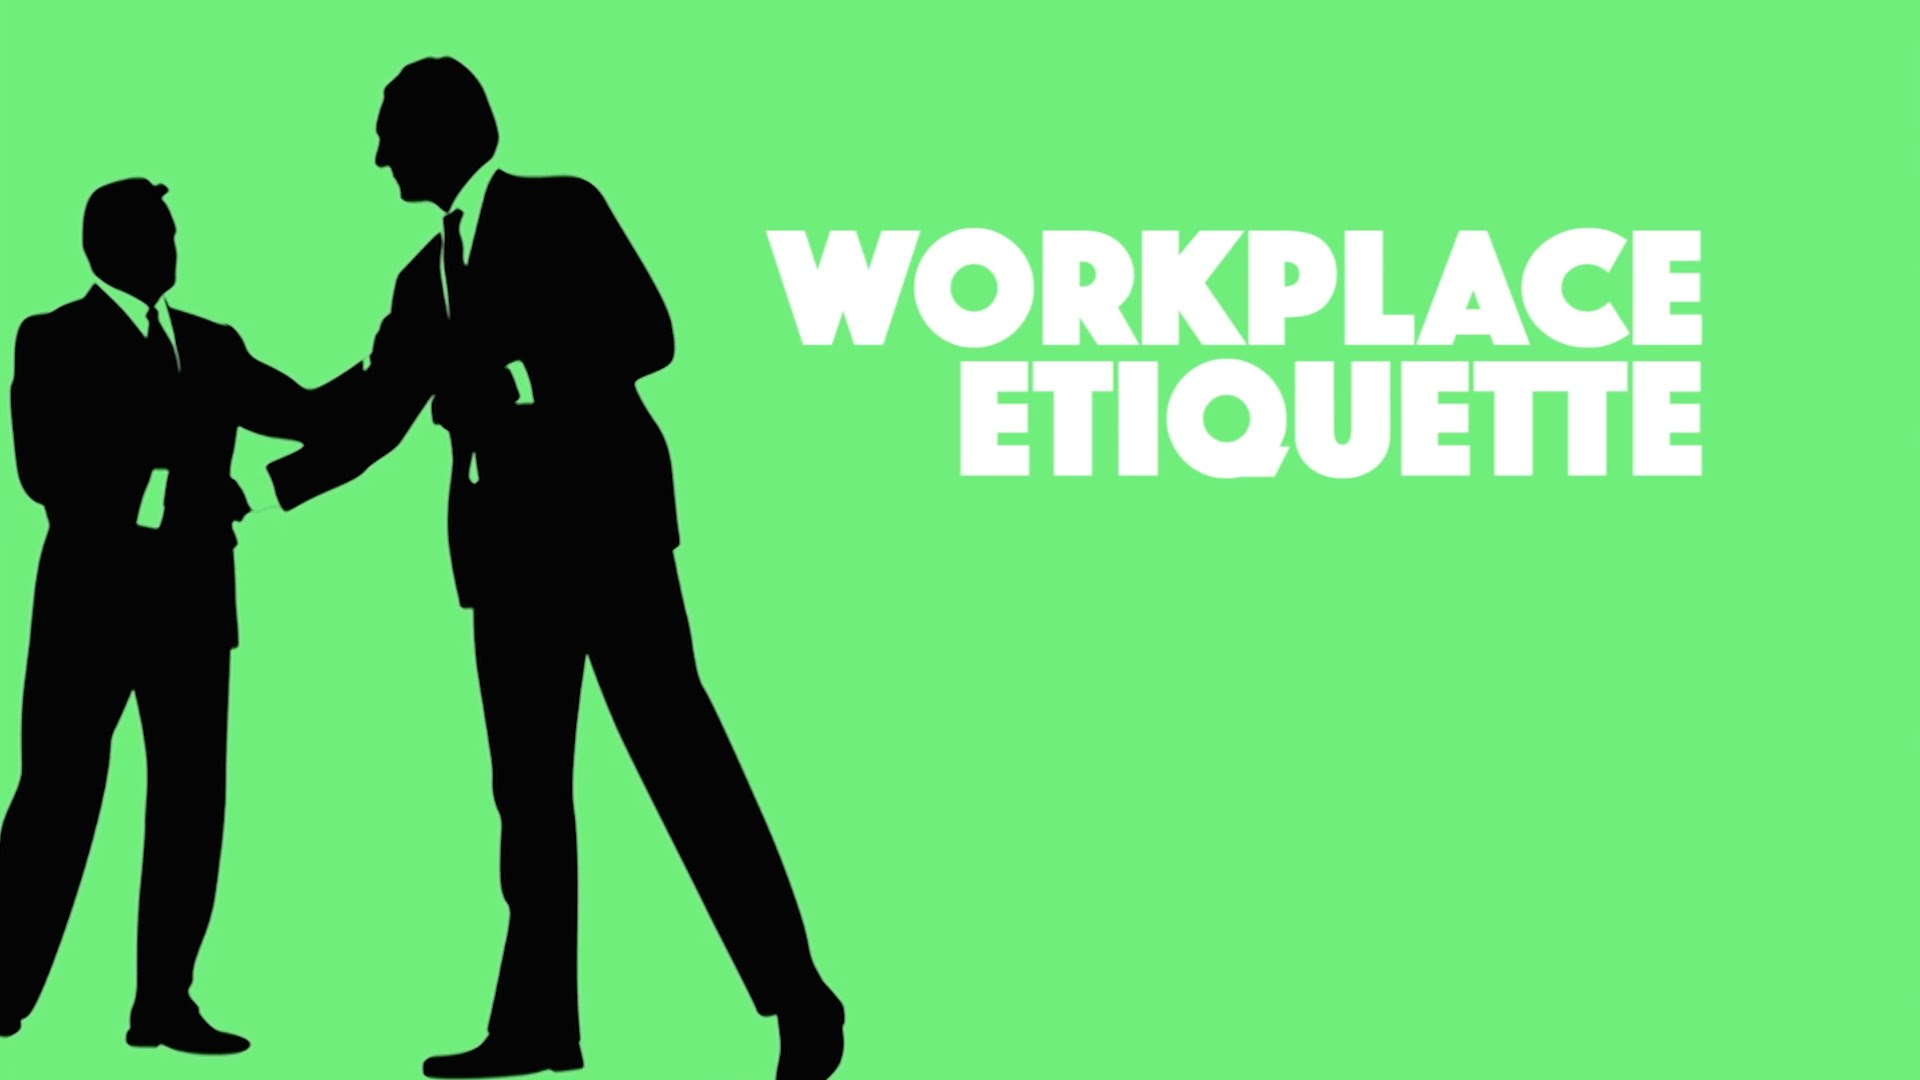 workplace etiquette essay  essay academic service lchomeworkxakz   workplace etiquette essay workplace etiquette is our system broken  workplace etiquette covers a wide range